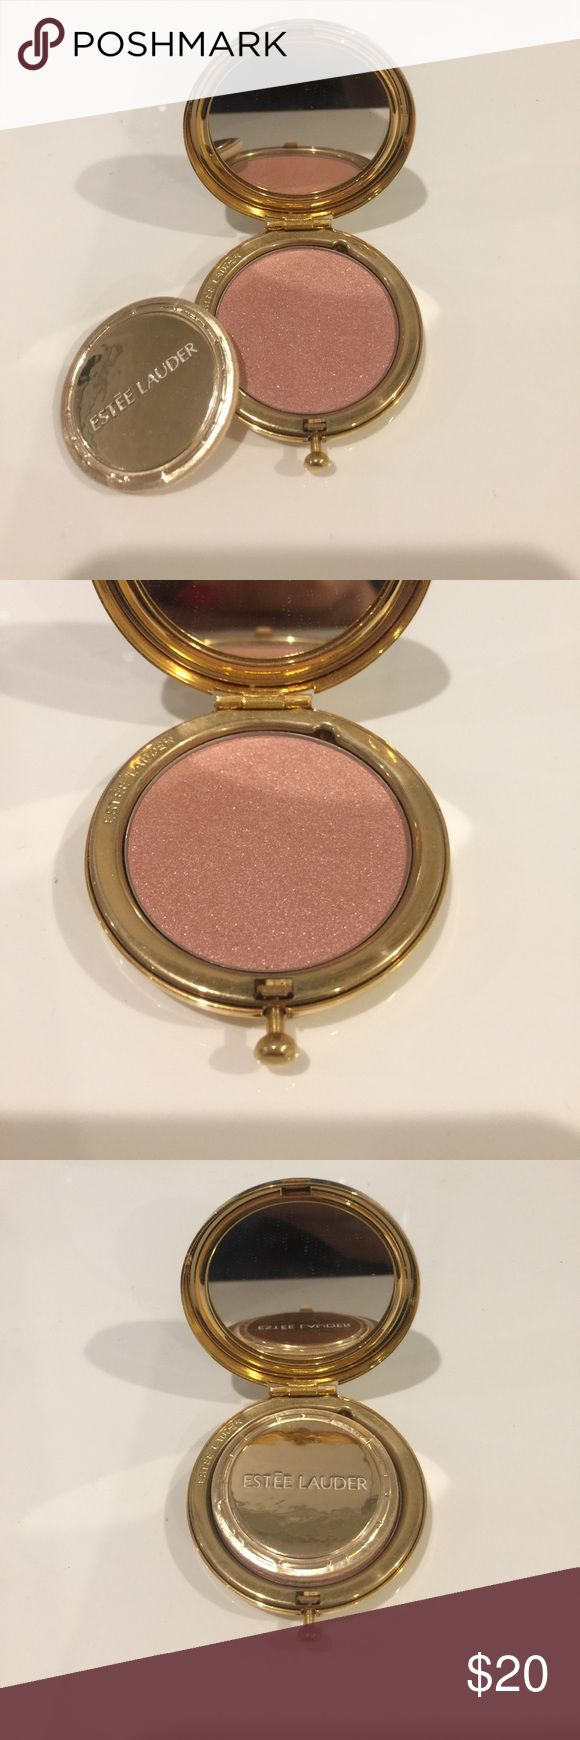 Tiny Estée Lauder compact blush. Barely used. Dainty lady like compact. Press button to open with mini puff and mirror. Blush in gold Pearl color. Barely used. All offers welcome. Estee Lauder Makeup Blush